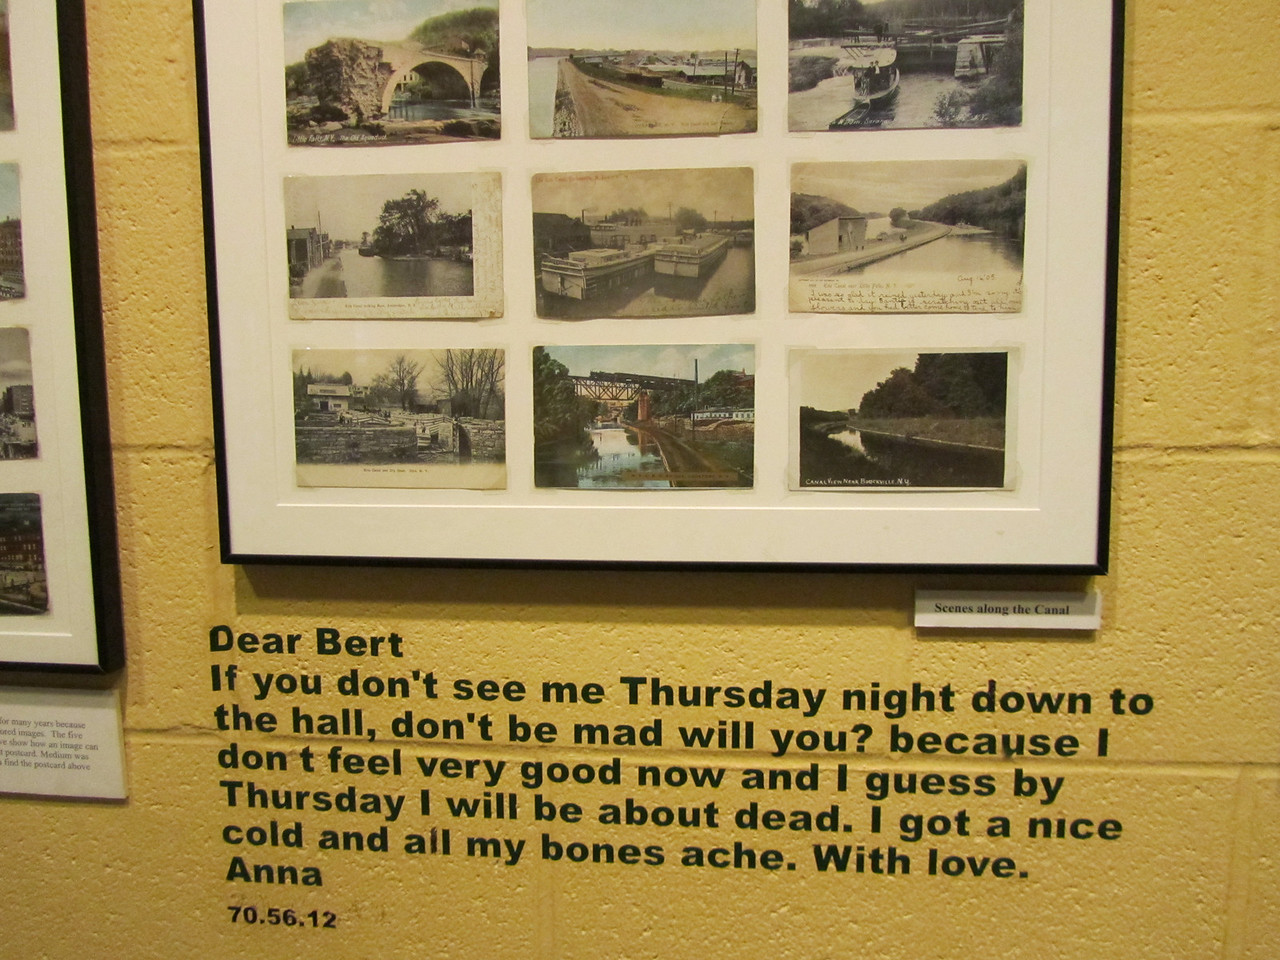 Some old postcards. That's a pretty good excuse for missing a date if you asked me.